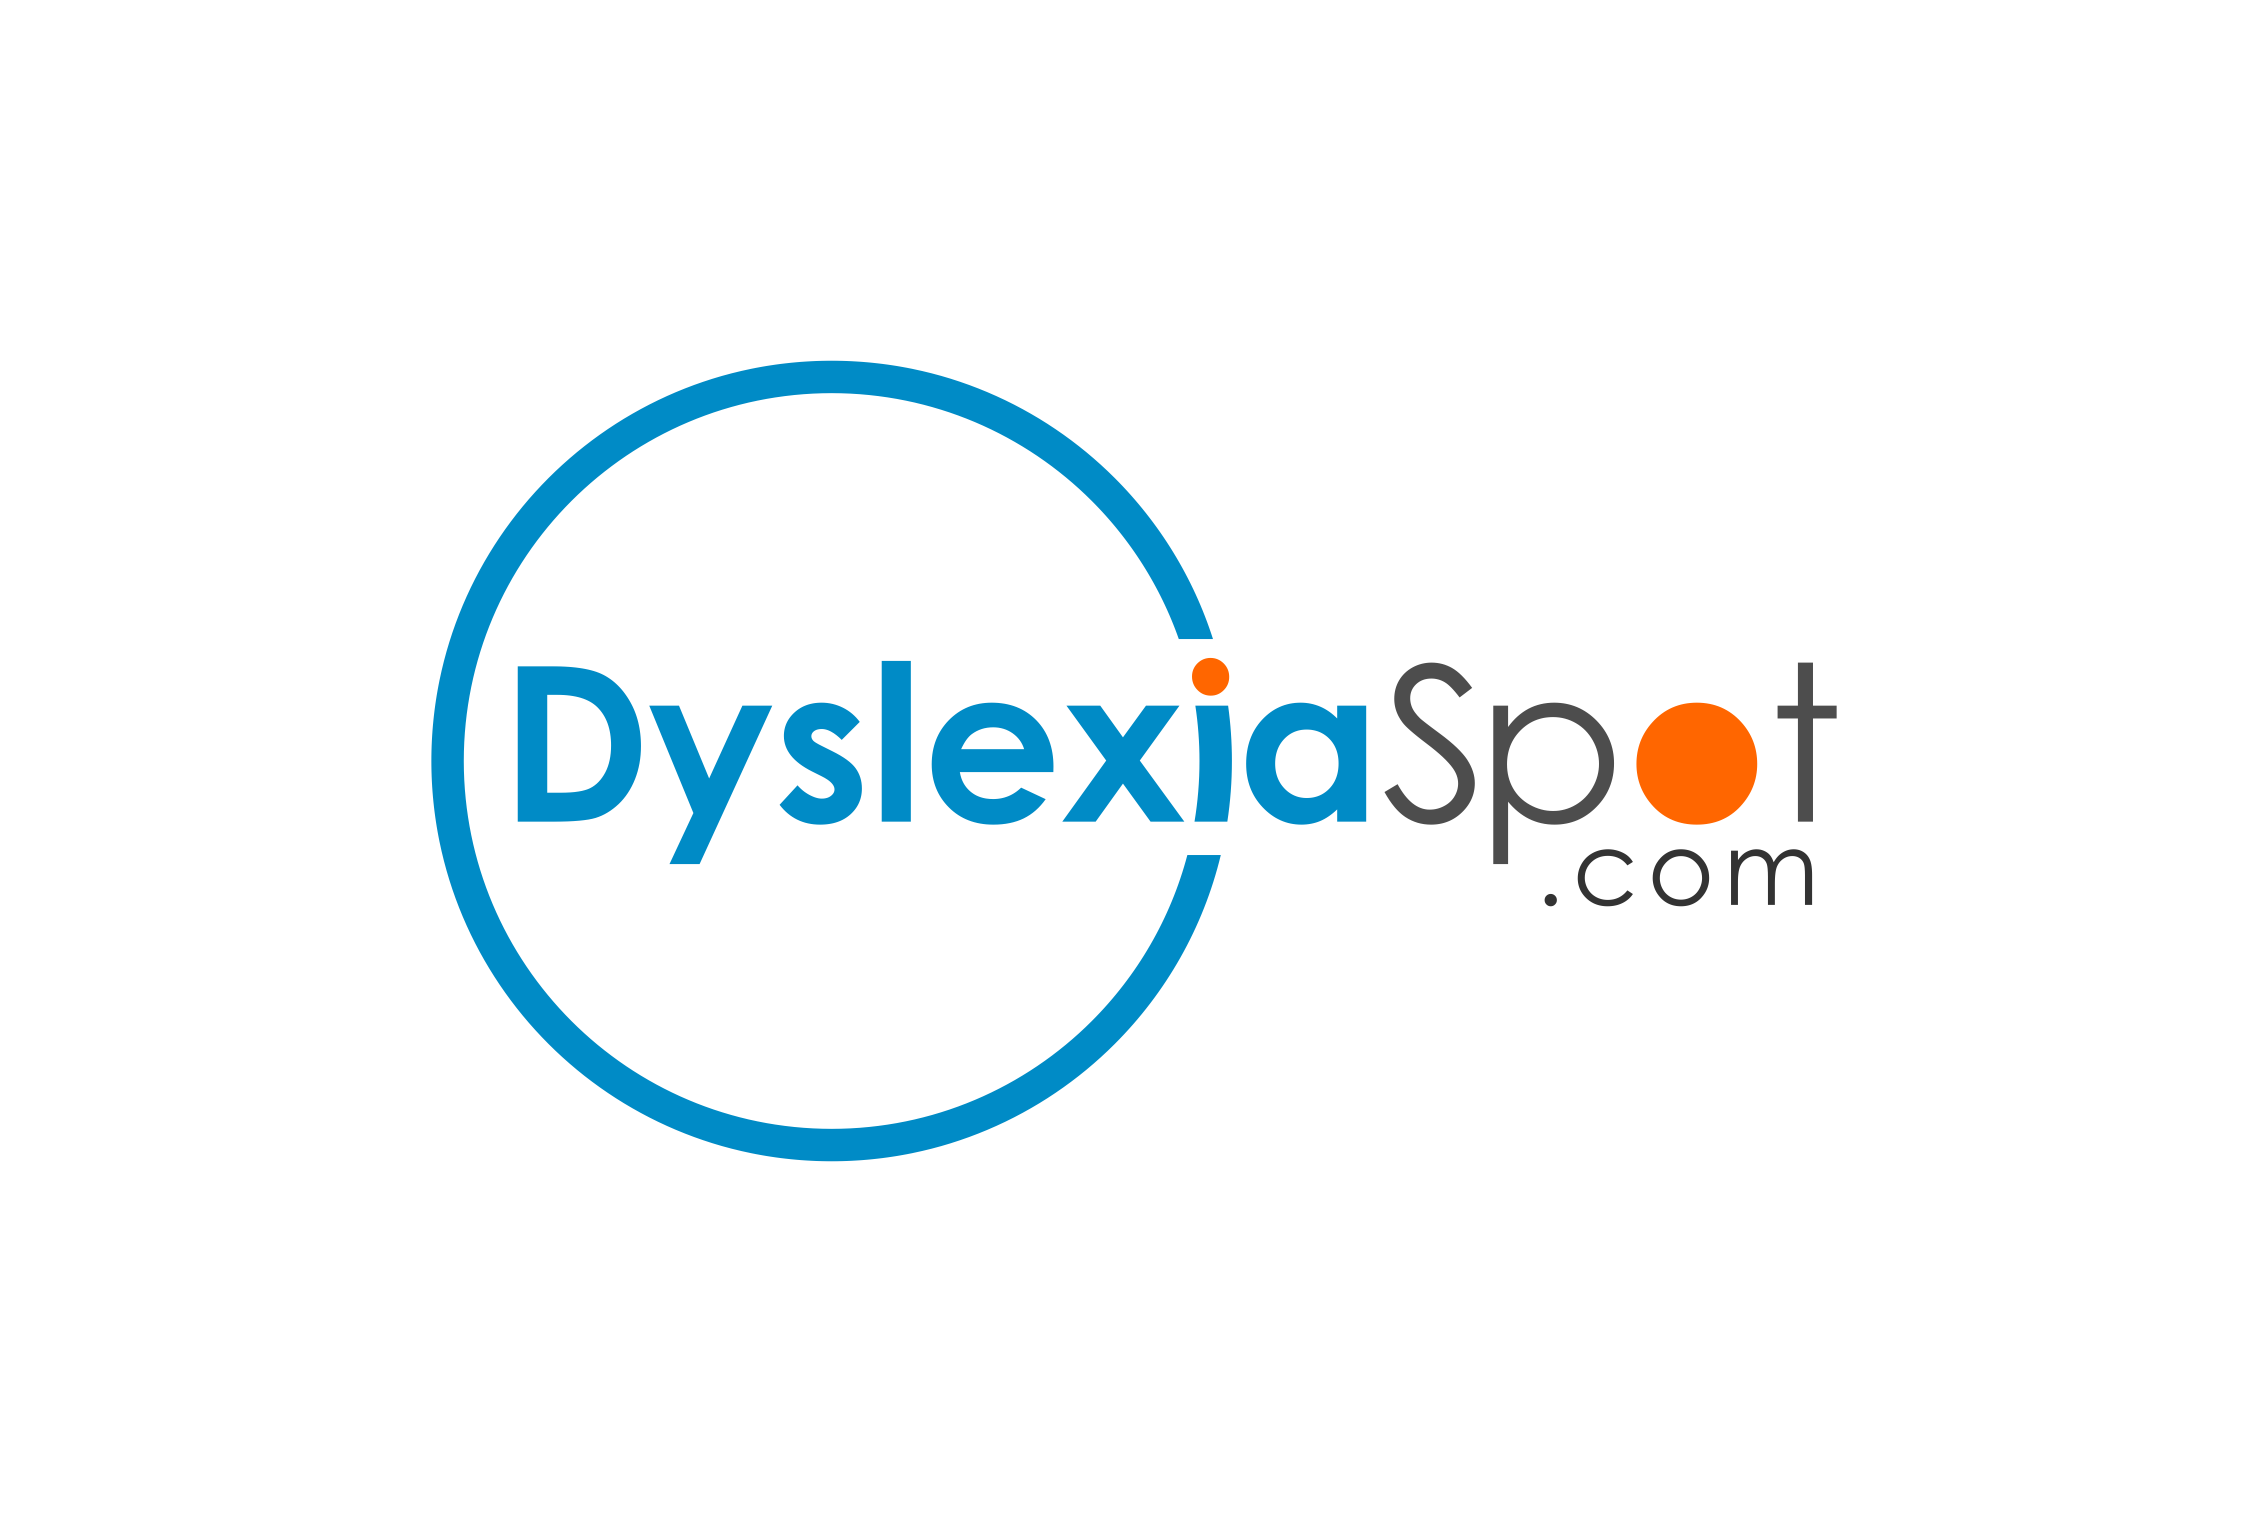 Logo Needed for a new online resource for those with dyslexia